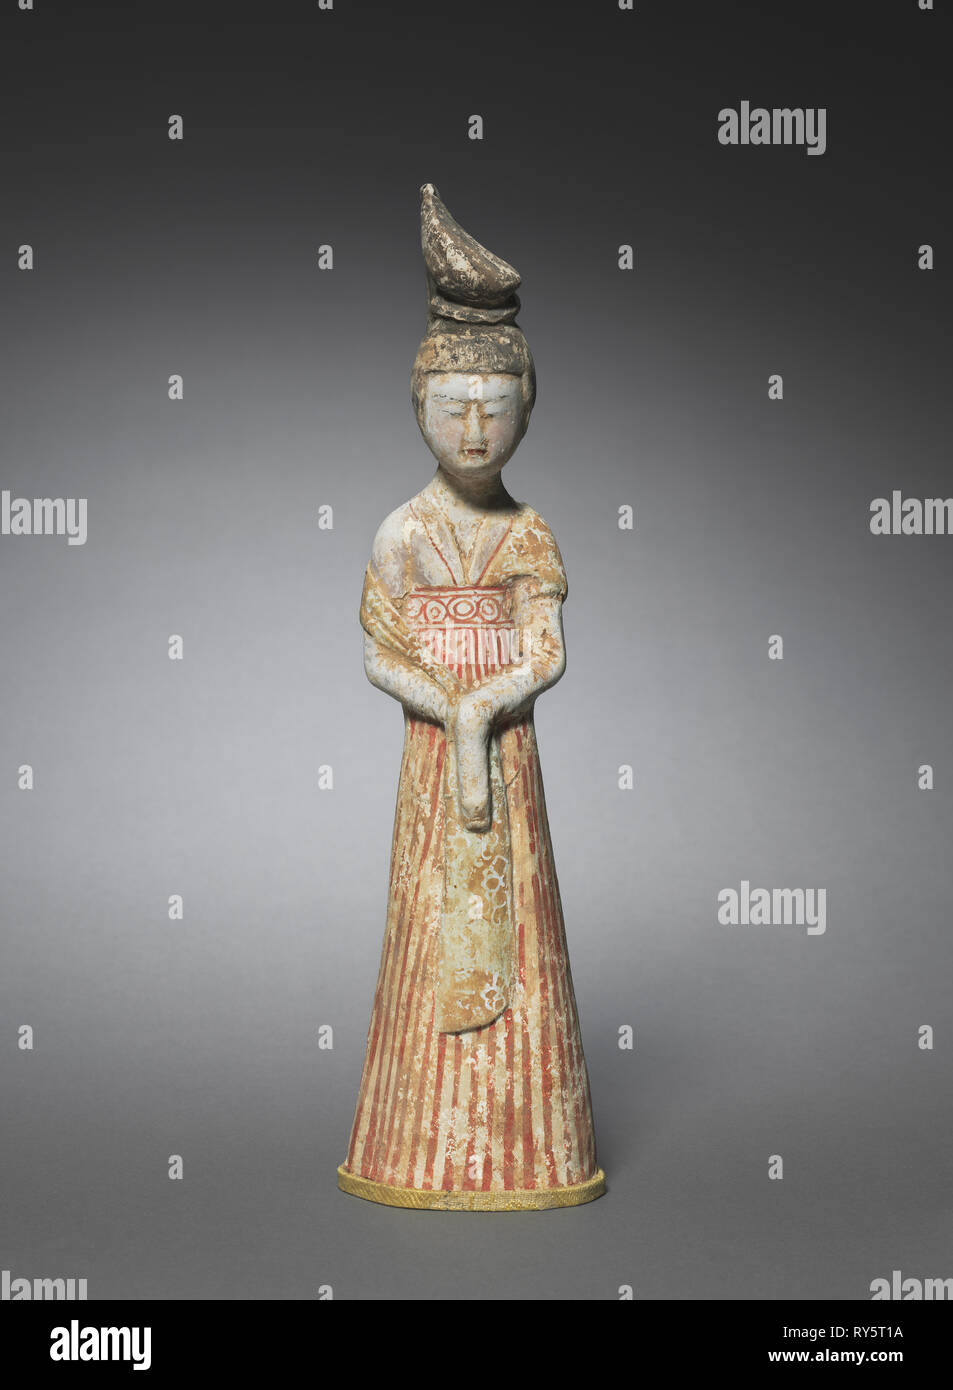 Court Lady with High Chignon, c. 700-750. North China, Tang dynasty (618-907). Earthenware with polychromy; overall: 31.6 cm (12 7/16 in - Stock Image